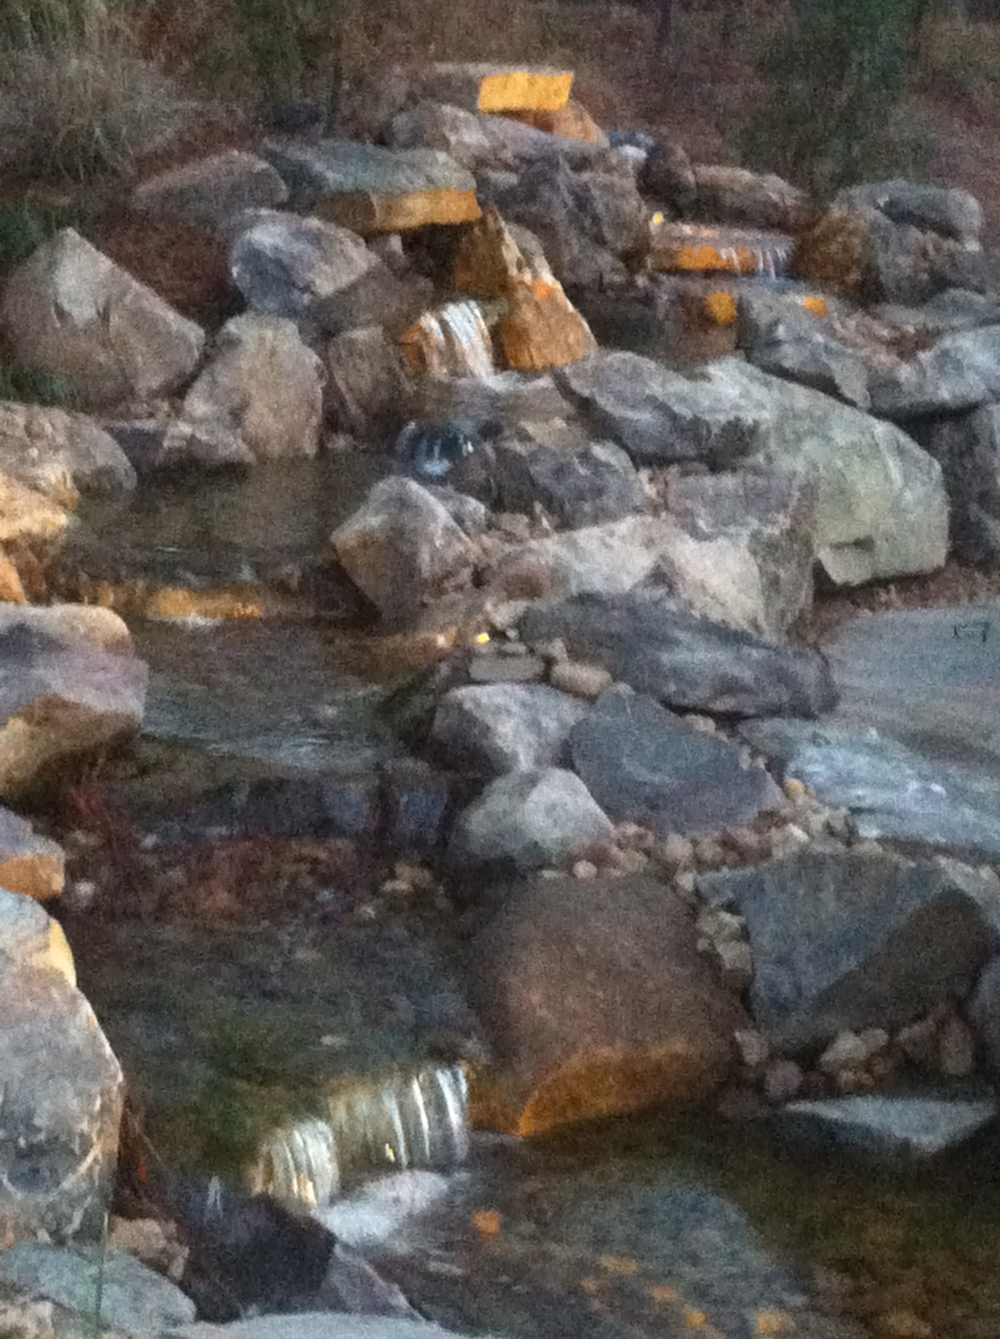 Boulder lined pondless stream